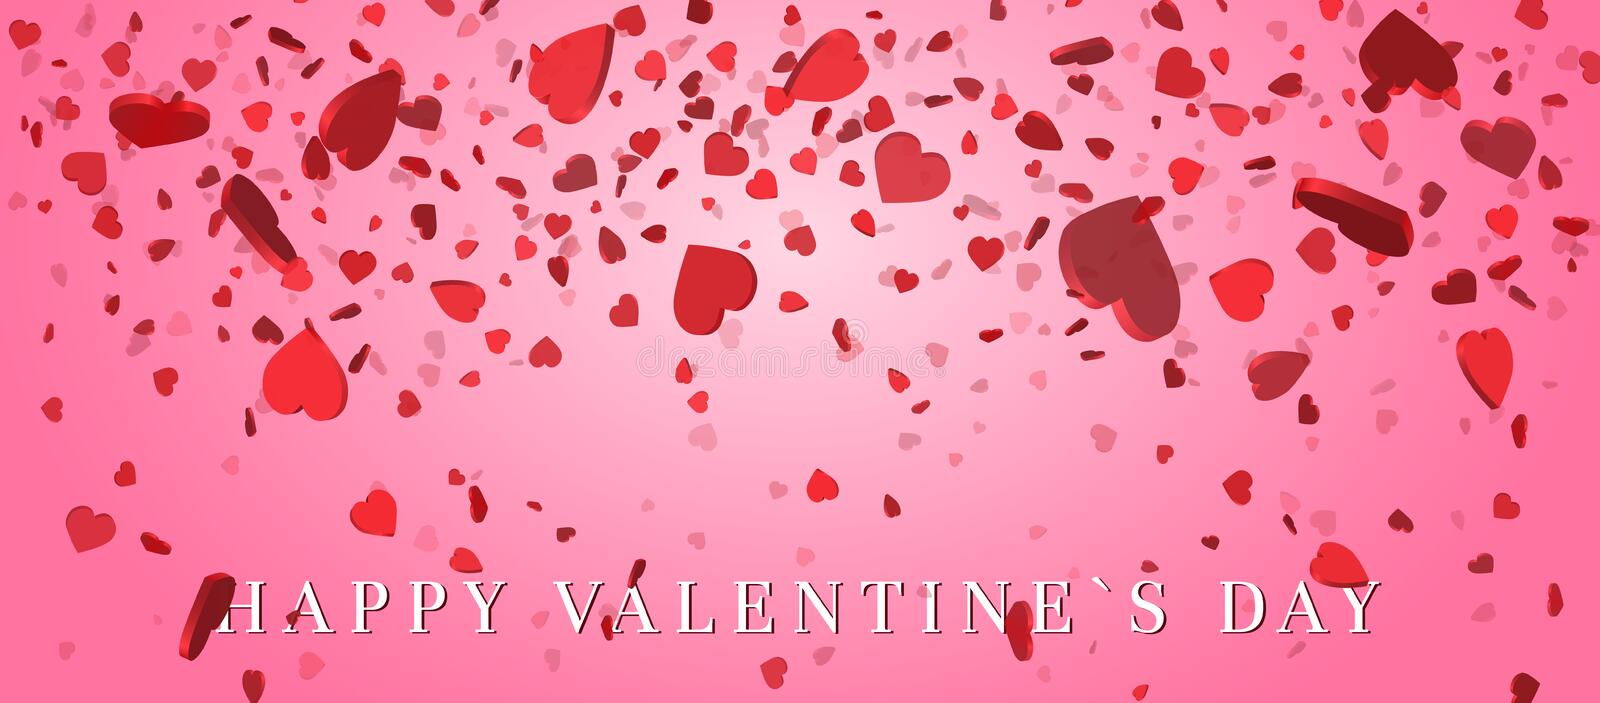 Heart confetti of Valentines petals falling on pink background. Flower petal in shape of heart confetti for Women`s Day vector illustration